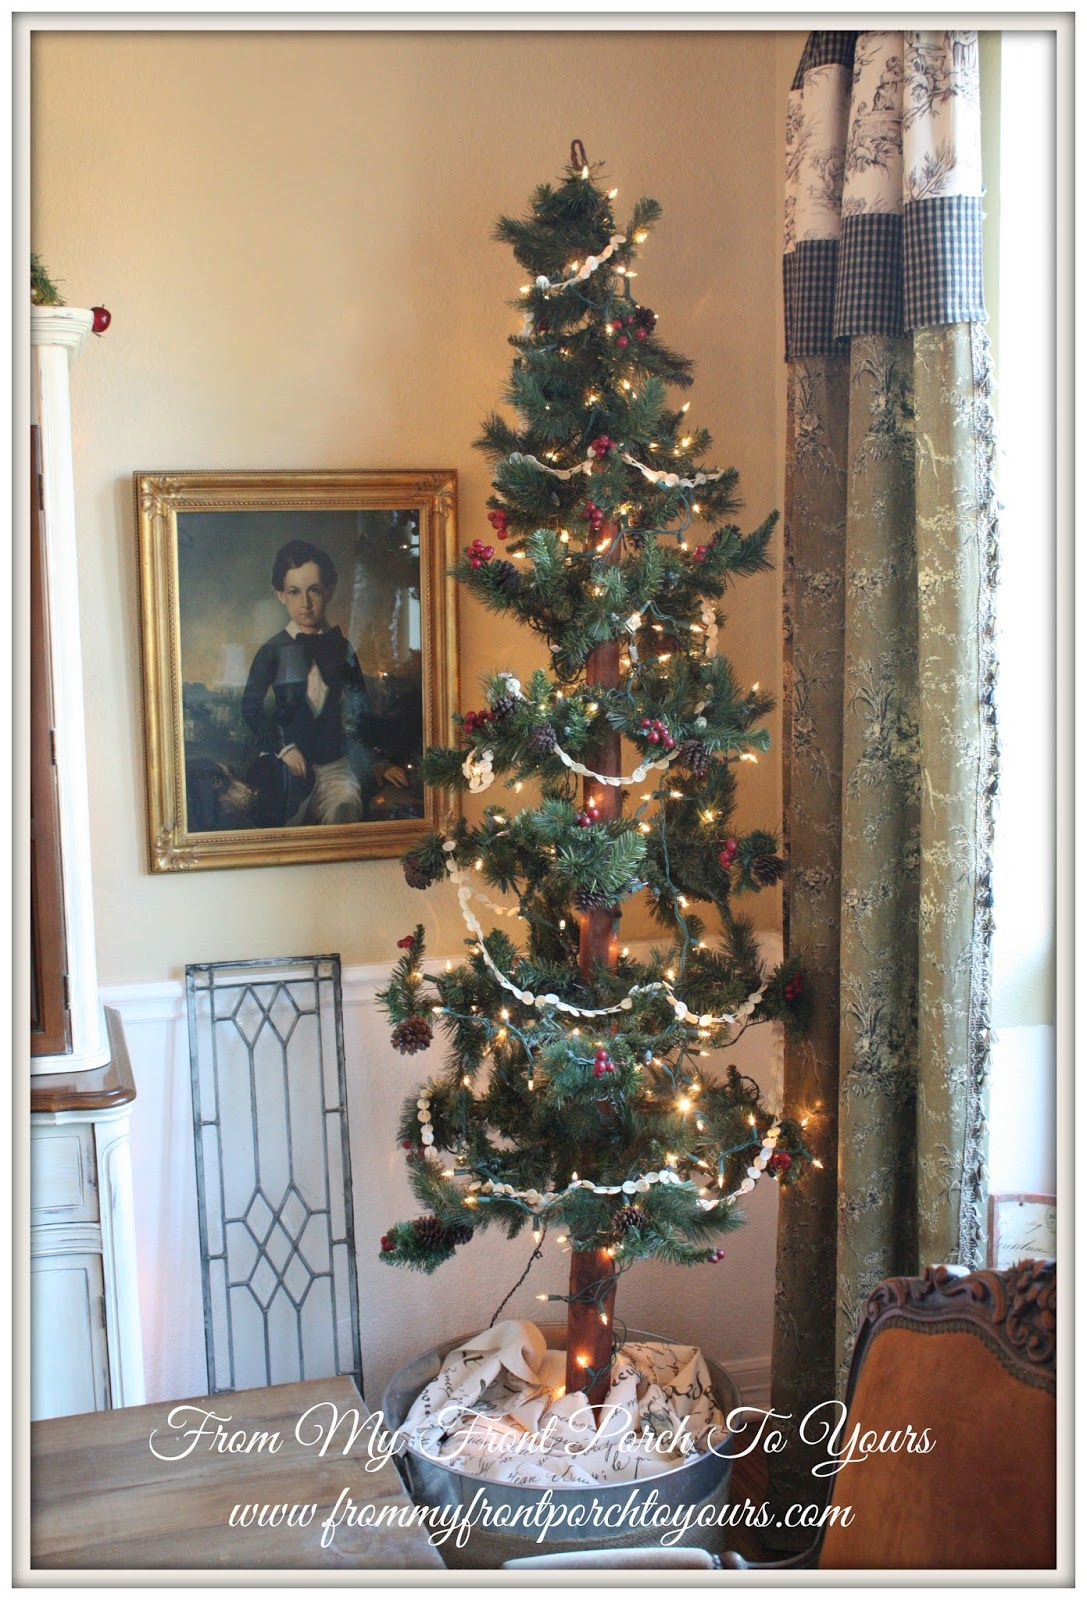 10 Cozy Decor Ideas For Your New Year S Eve Dining Room: From My Front Porch To Yours: French Farmhouse Christmas